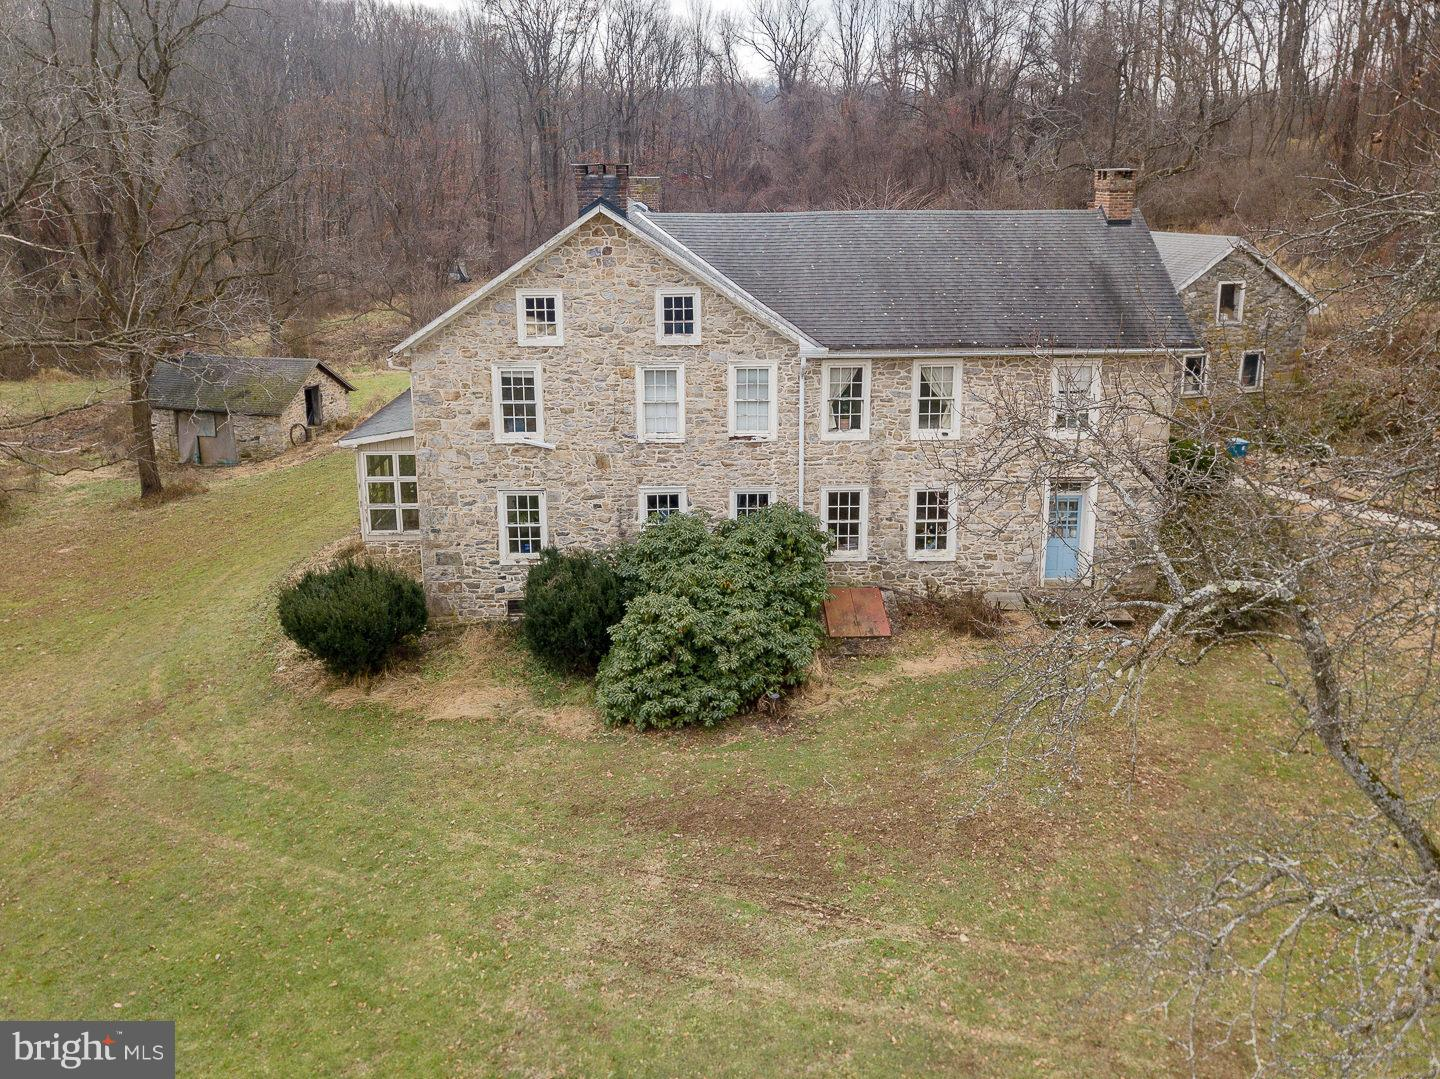 5476 HEISTAND ROAD, ZIONSVILLE, PA 18092